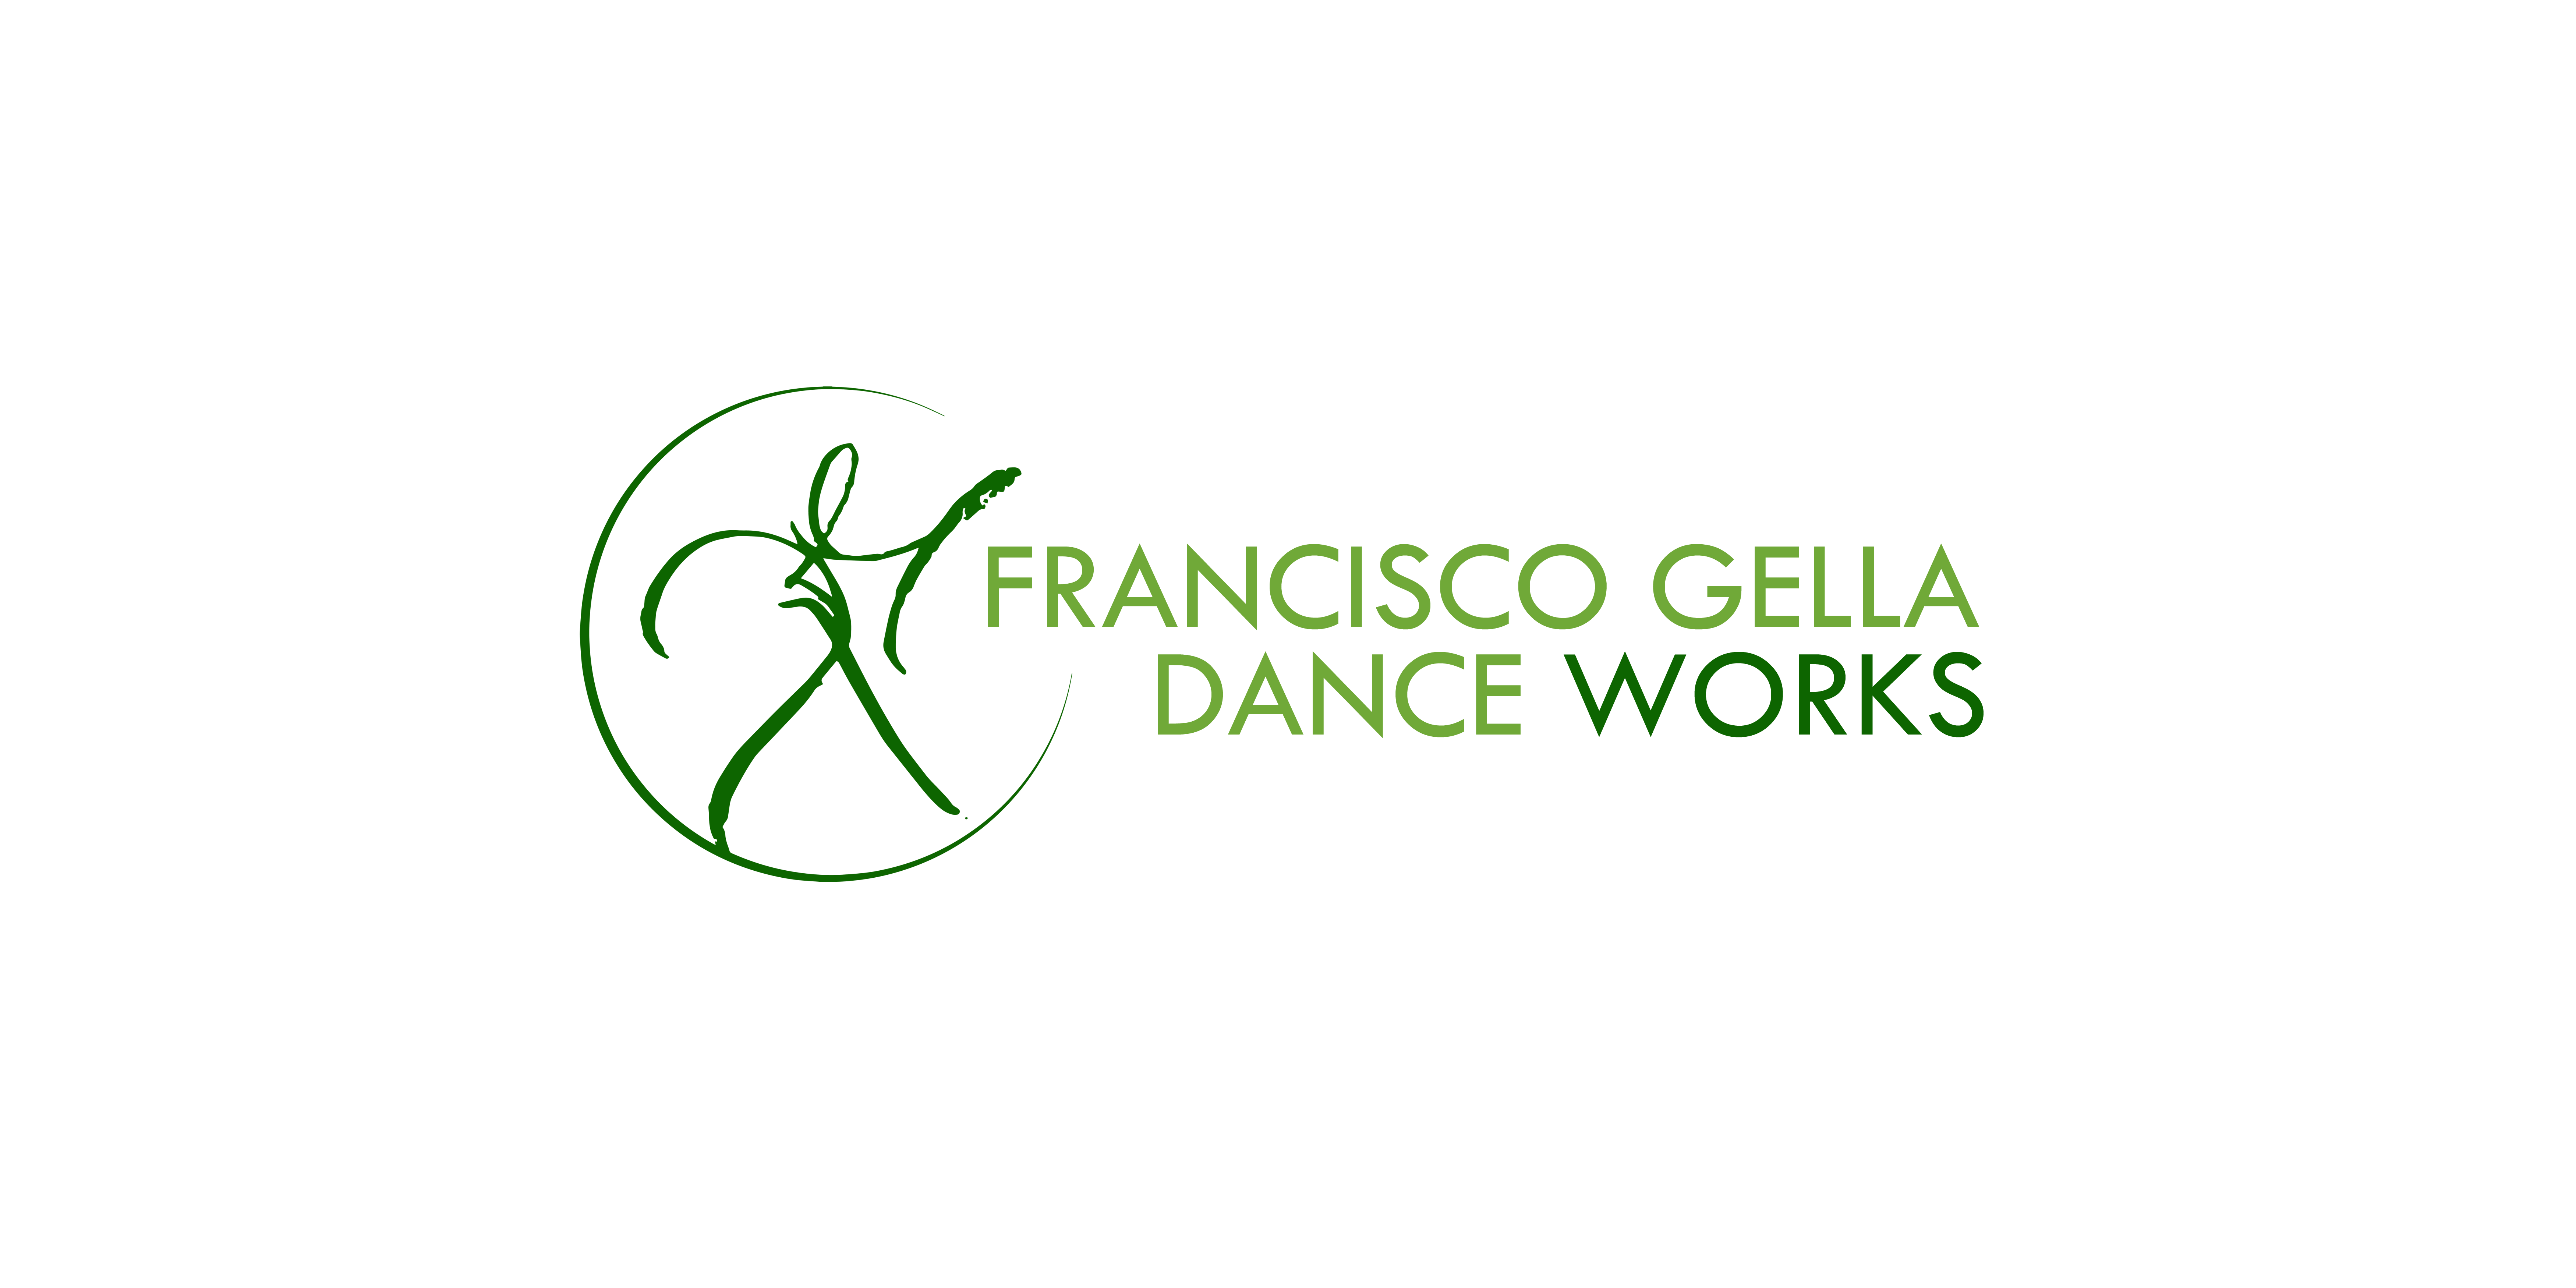 Francisco Gella's Summer Training and Educational Programs